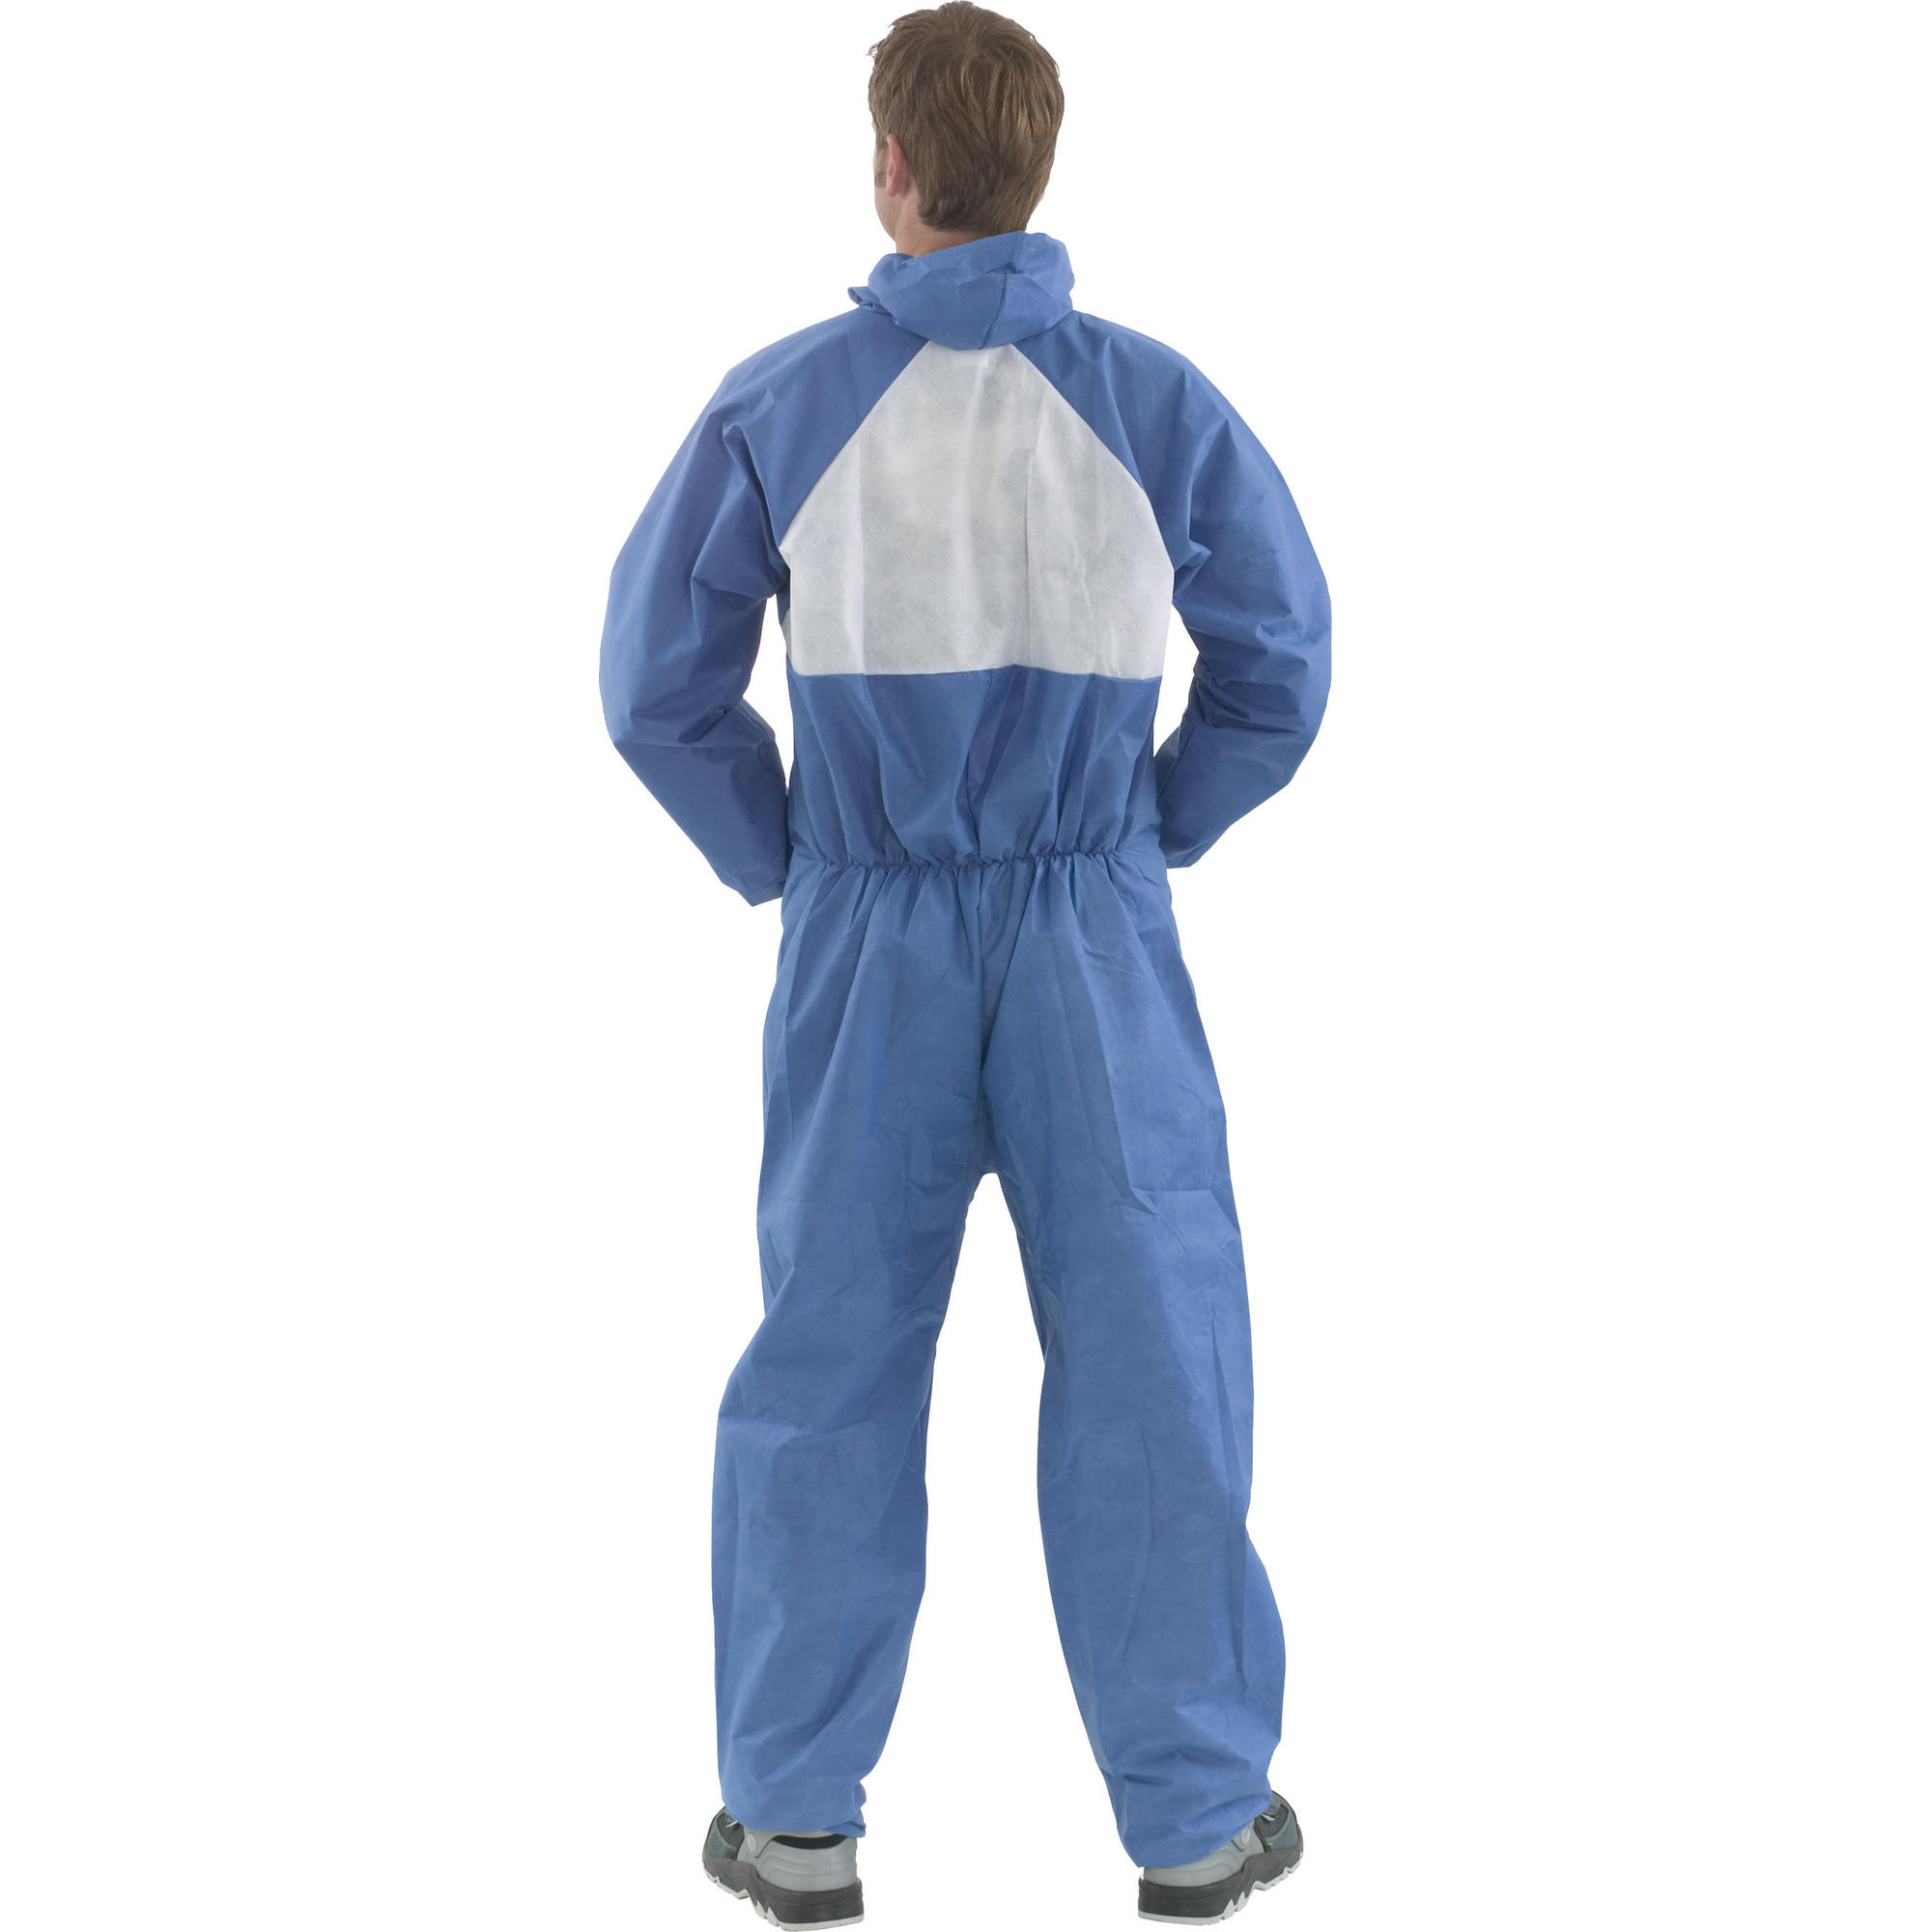 3M 4530 Fire Resistant Coveralls XL Blue/White Ref 4530XL Pack 20 *Up to 3 Day Leadtime*